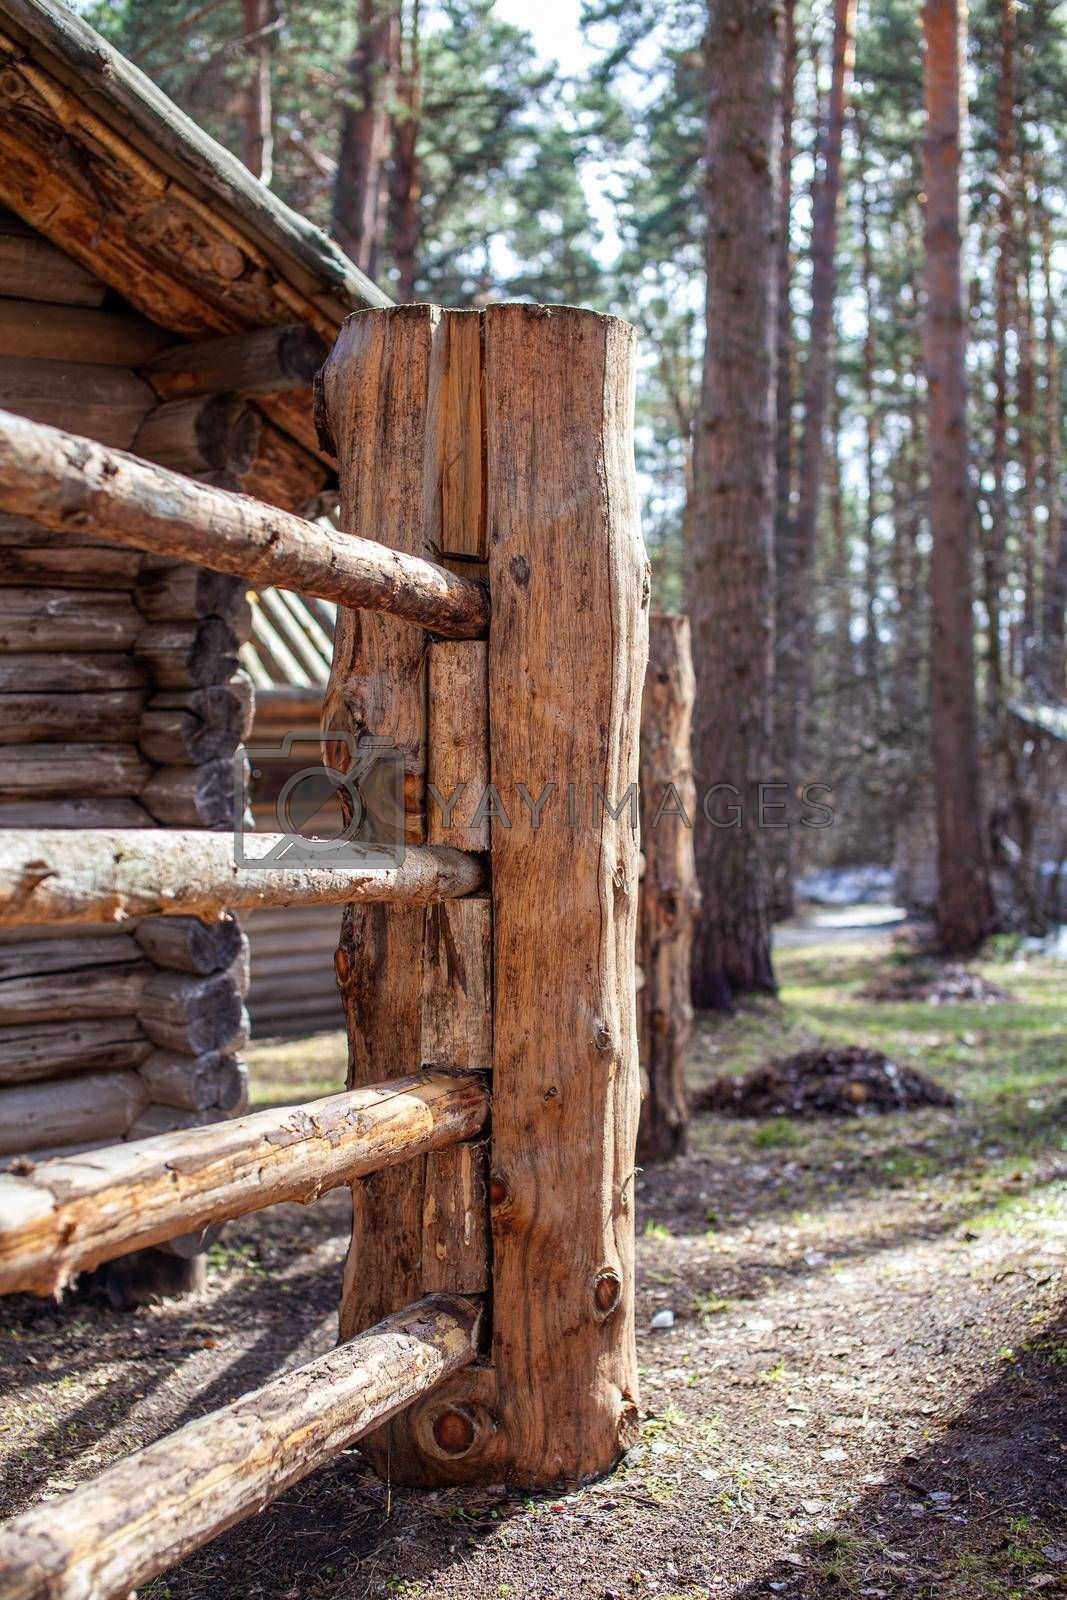 Large wooden fence posts that enclose an old wooden house in the forest. How people built houses and fences in the past. Ecological construction and materials.